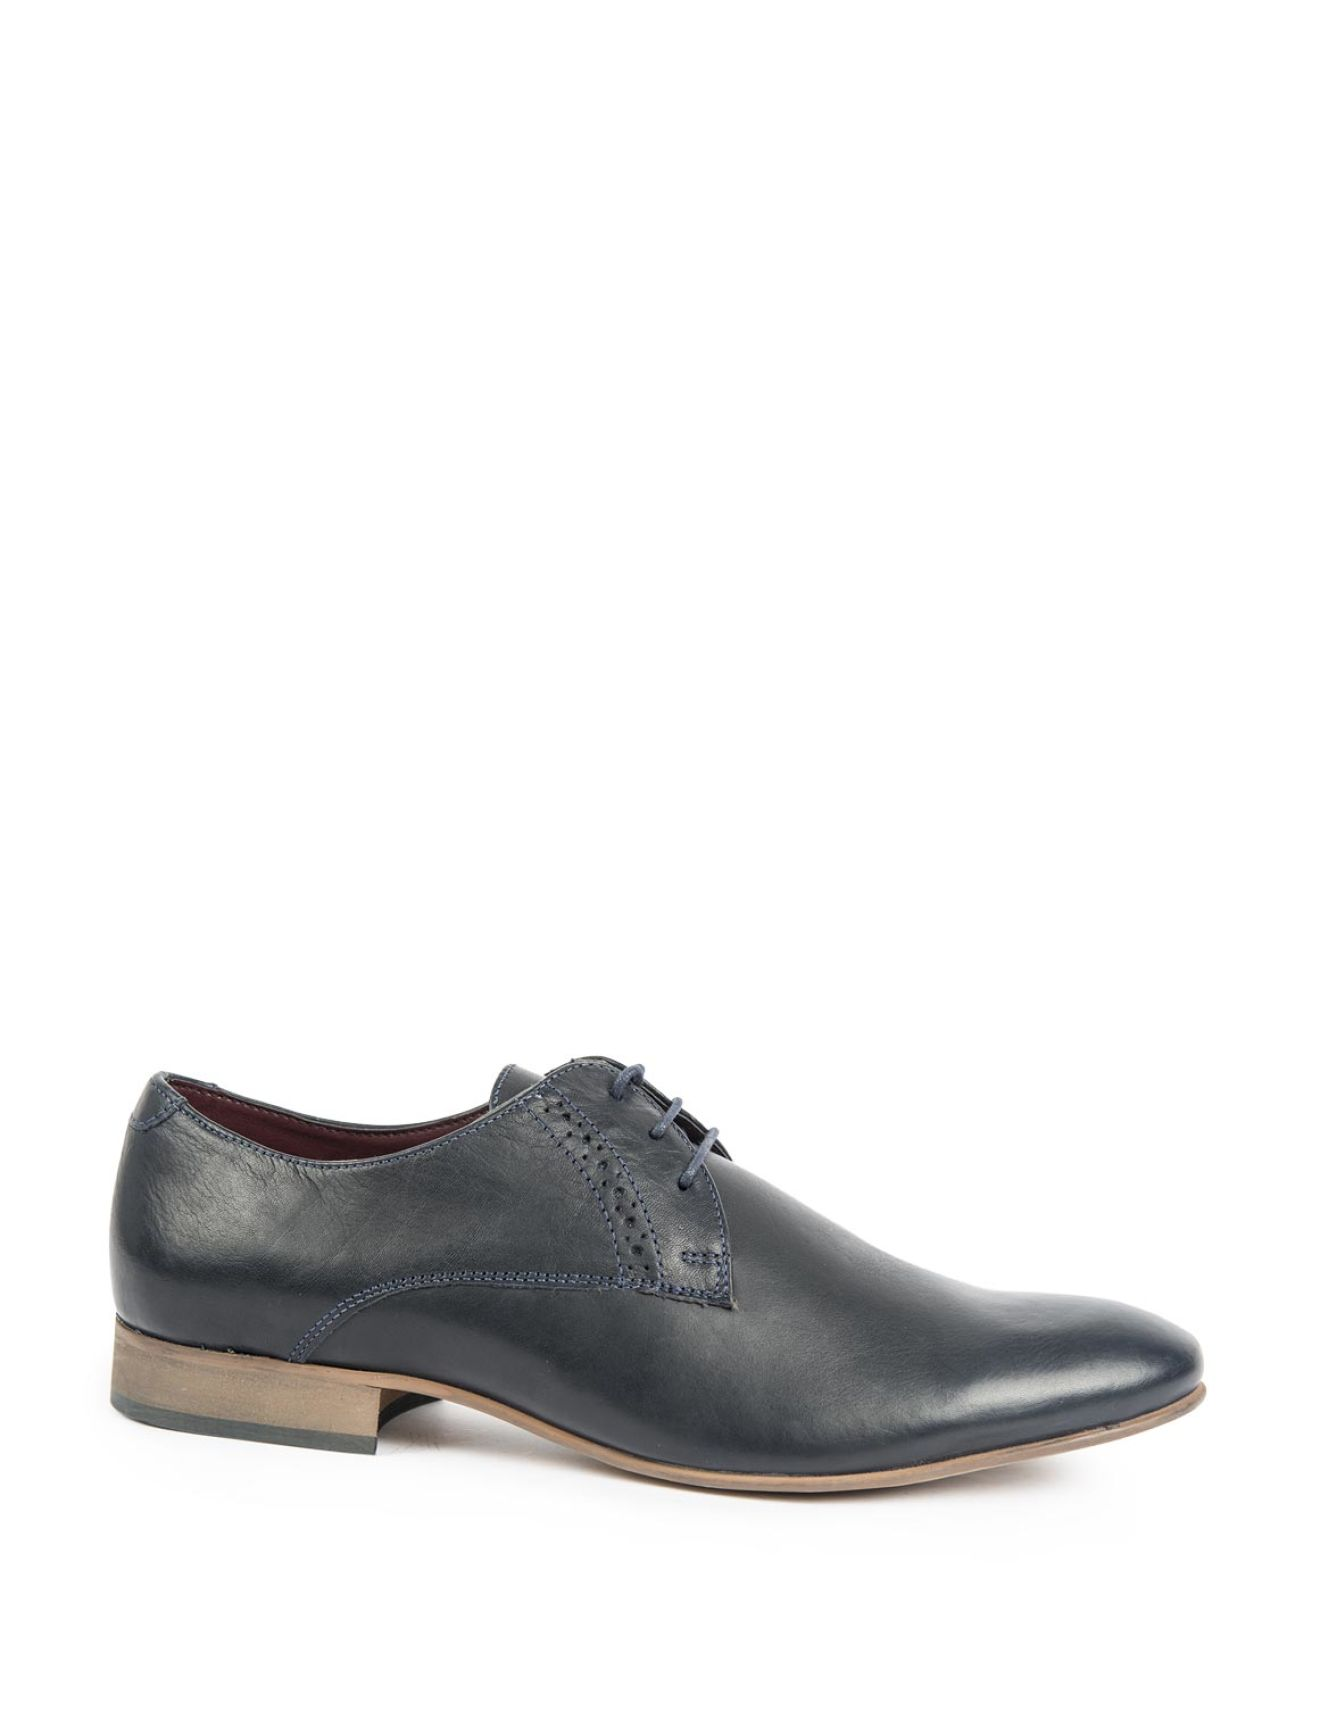 David Jones Shoes Buy Online